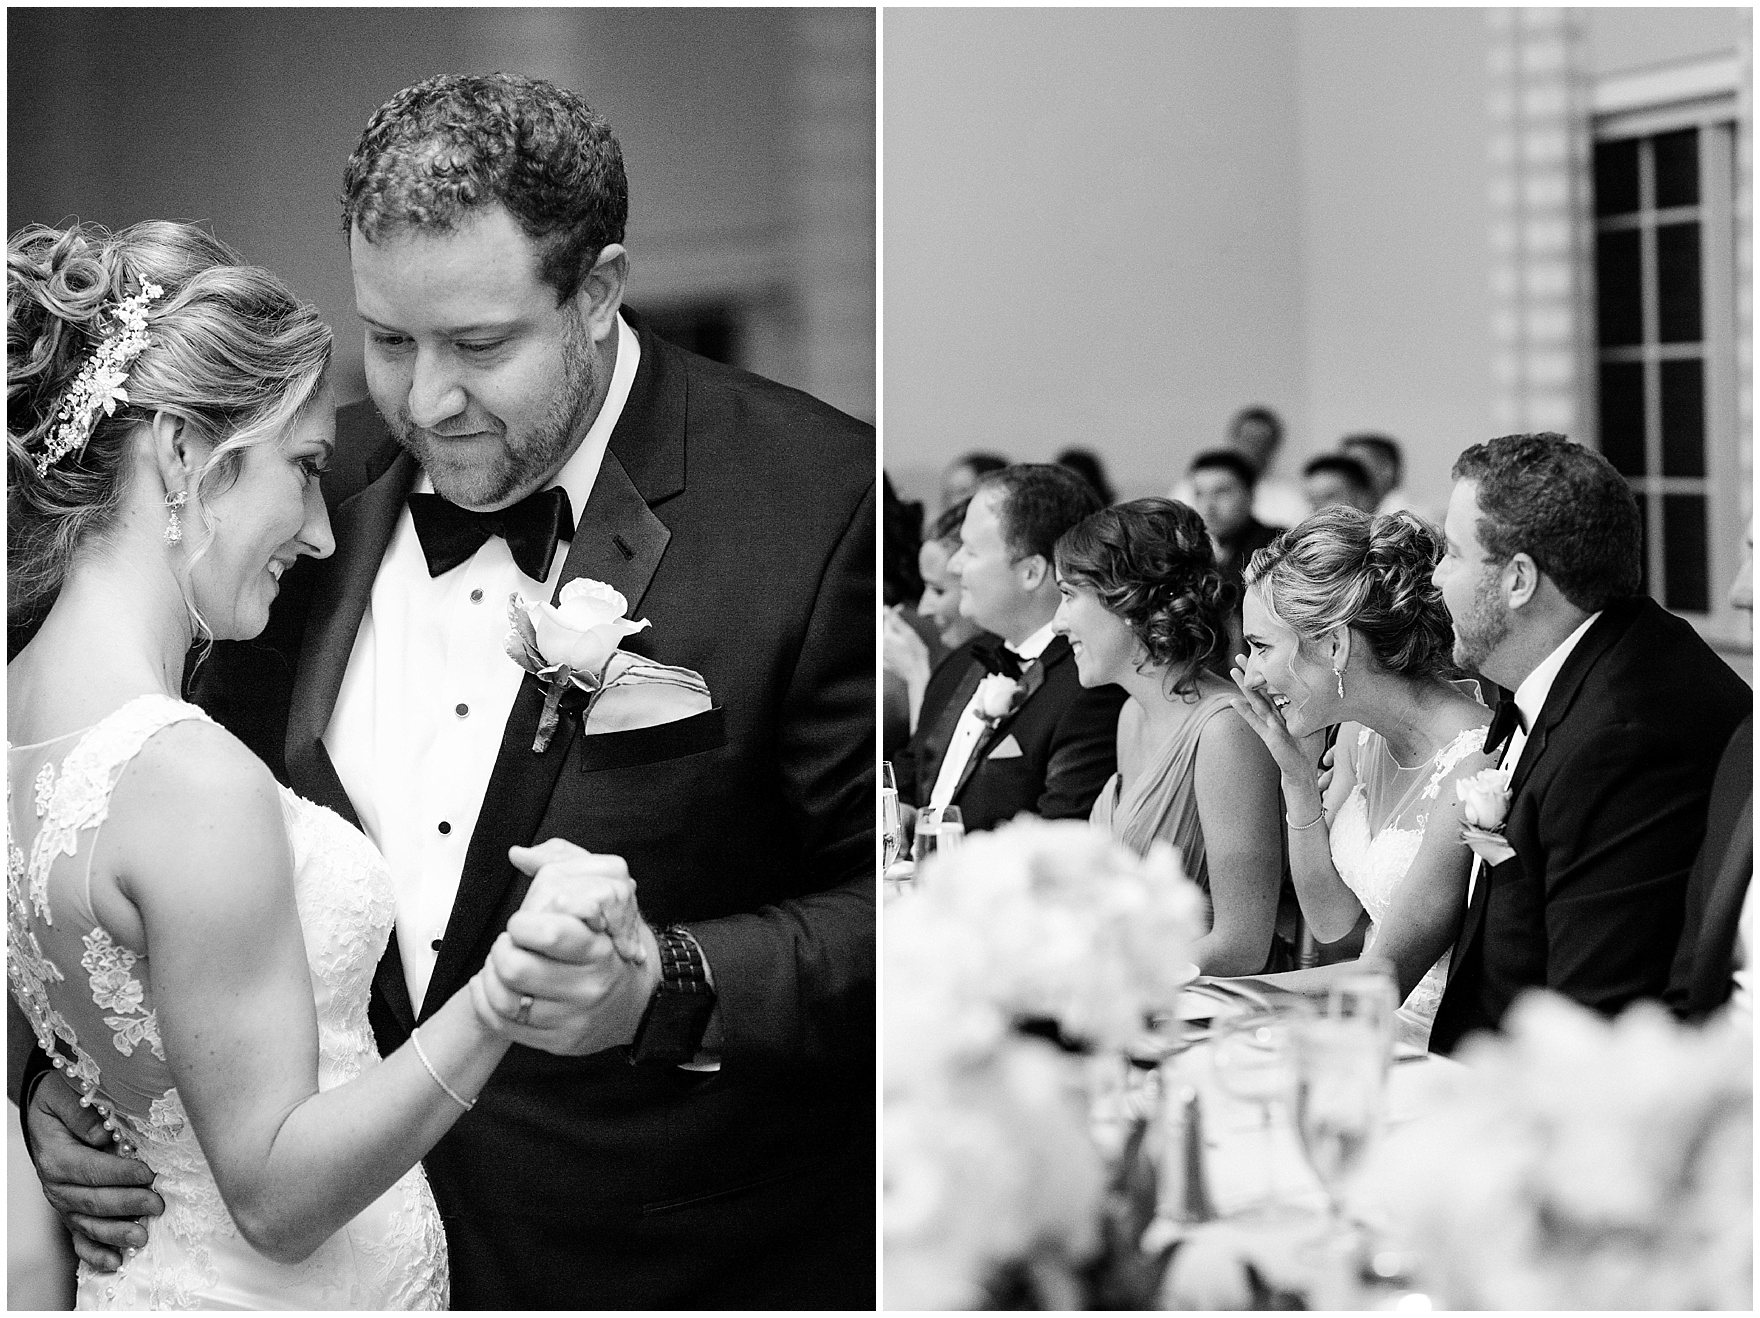 The bride and groom listen to toasts during a Glen Club Glenview Illinois wedding.